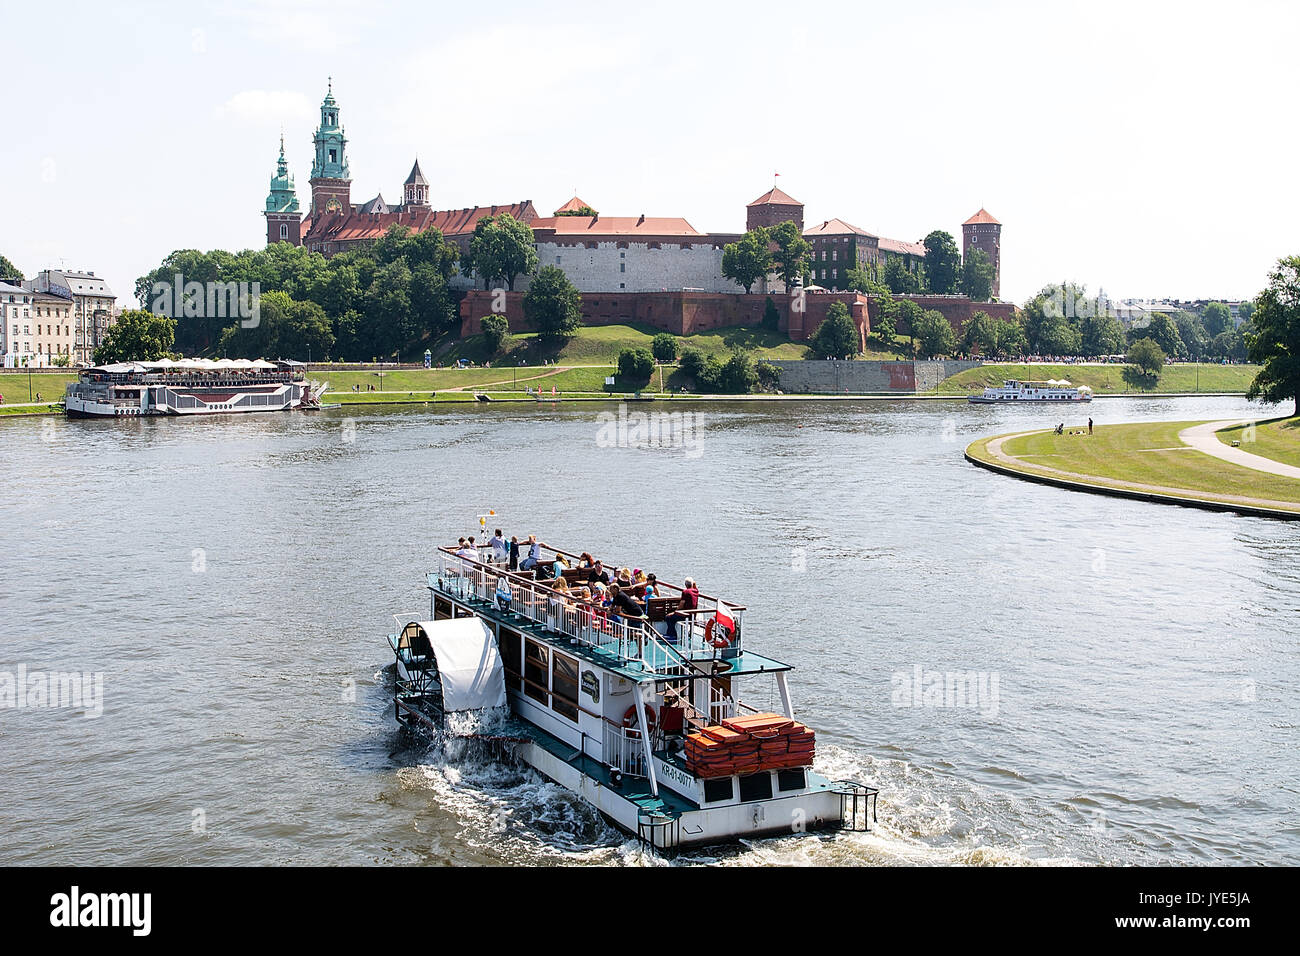 View on the Wawel Castle from Vistula river in Krakow (Poland) Stock Photo